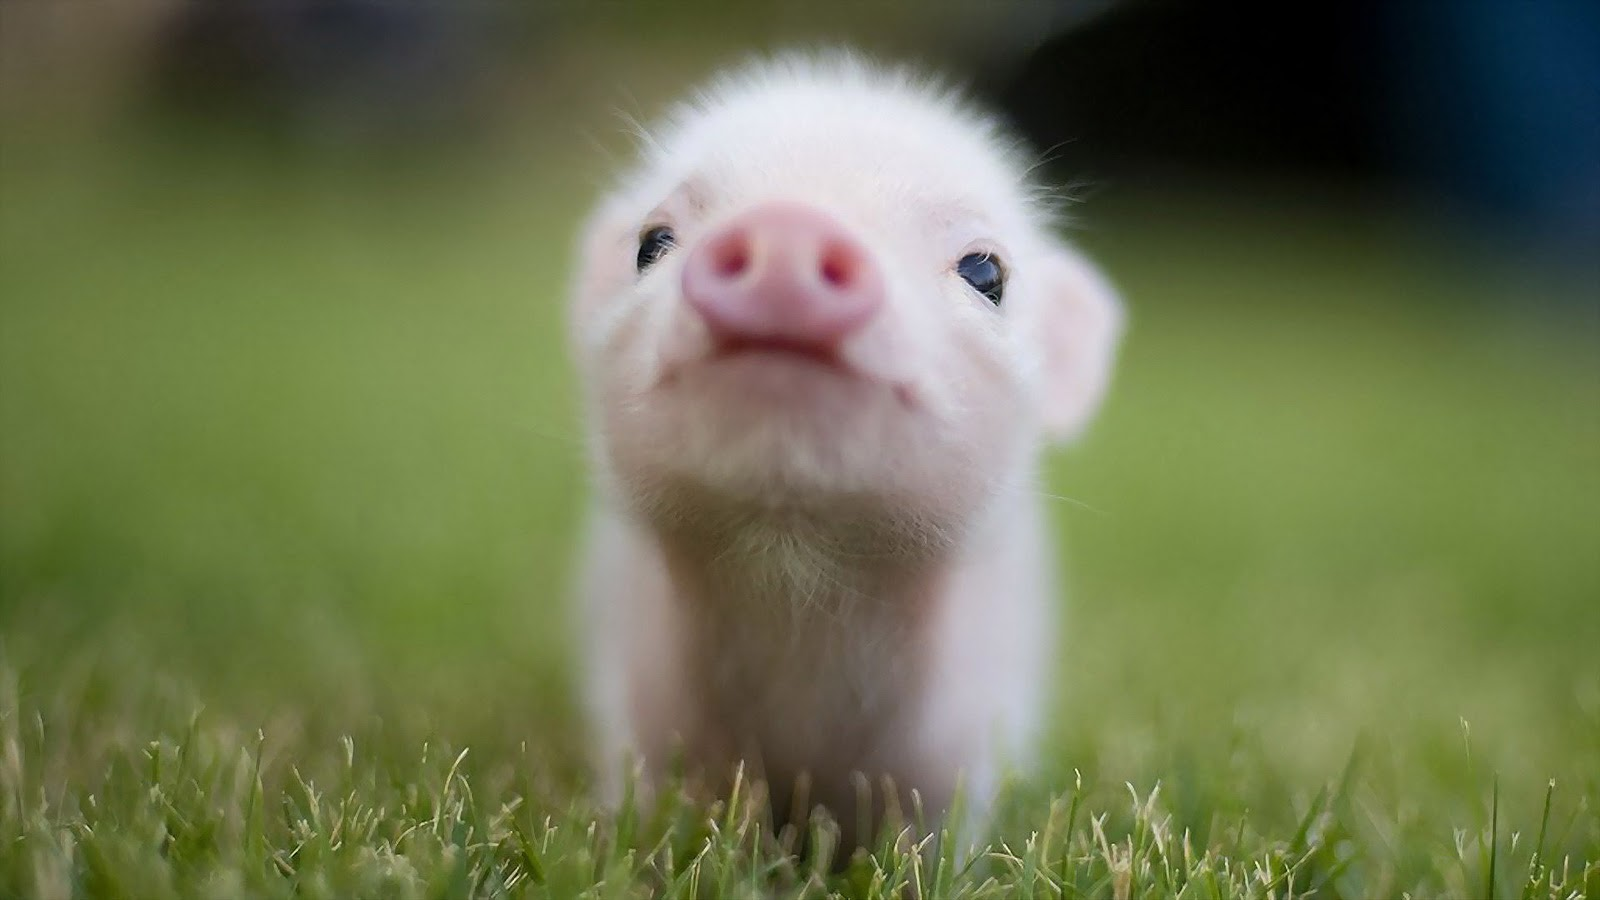 Cute Baby Pigs 11278 Hd Wallpapers HD Background Wallpaper 1600x900